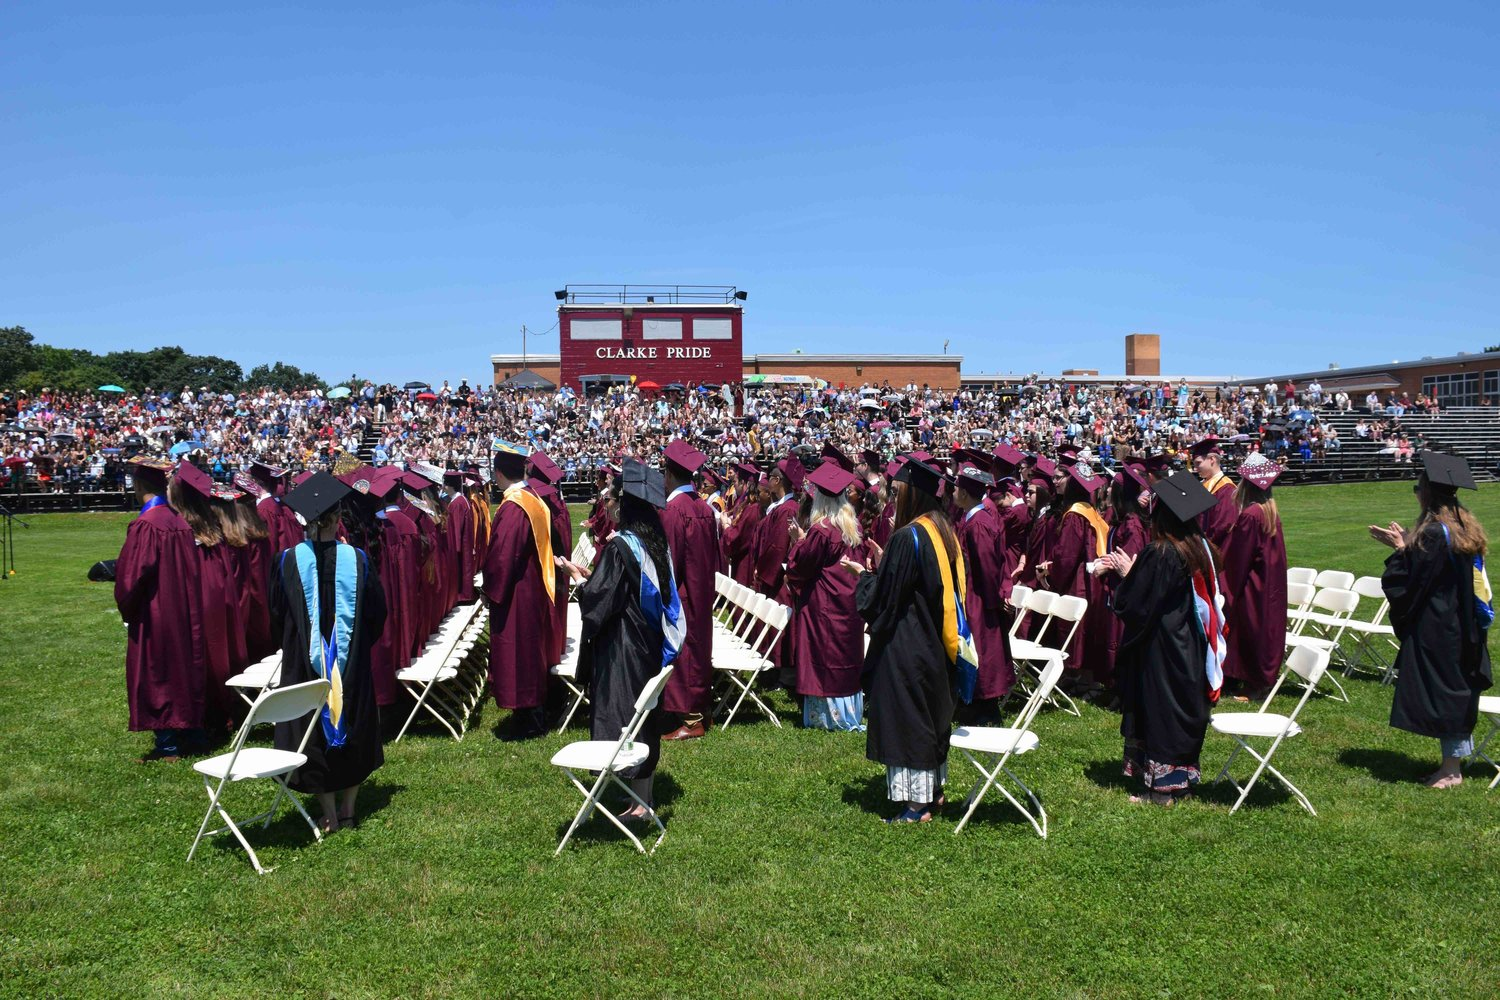 The sunny Sunday afternoon drew hundreds to see the seniors in the Class of 2019 shake hands with district officials and earn their diplomas.